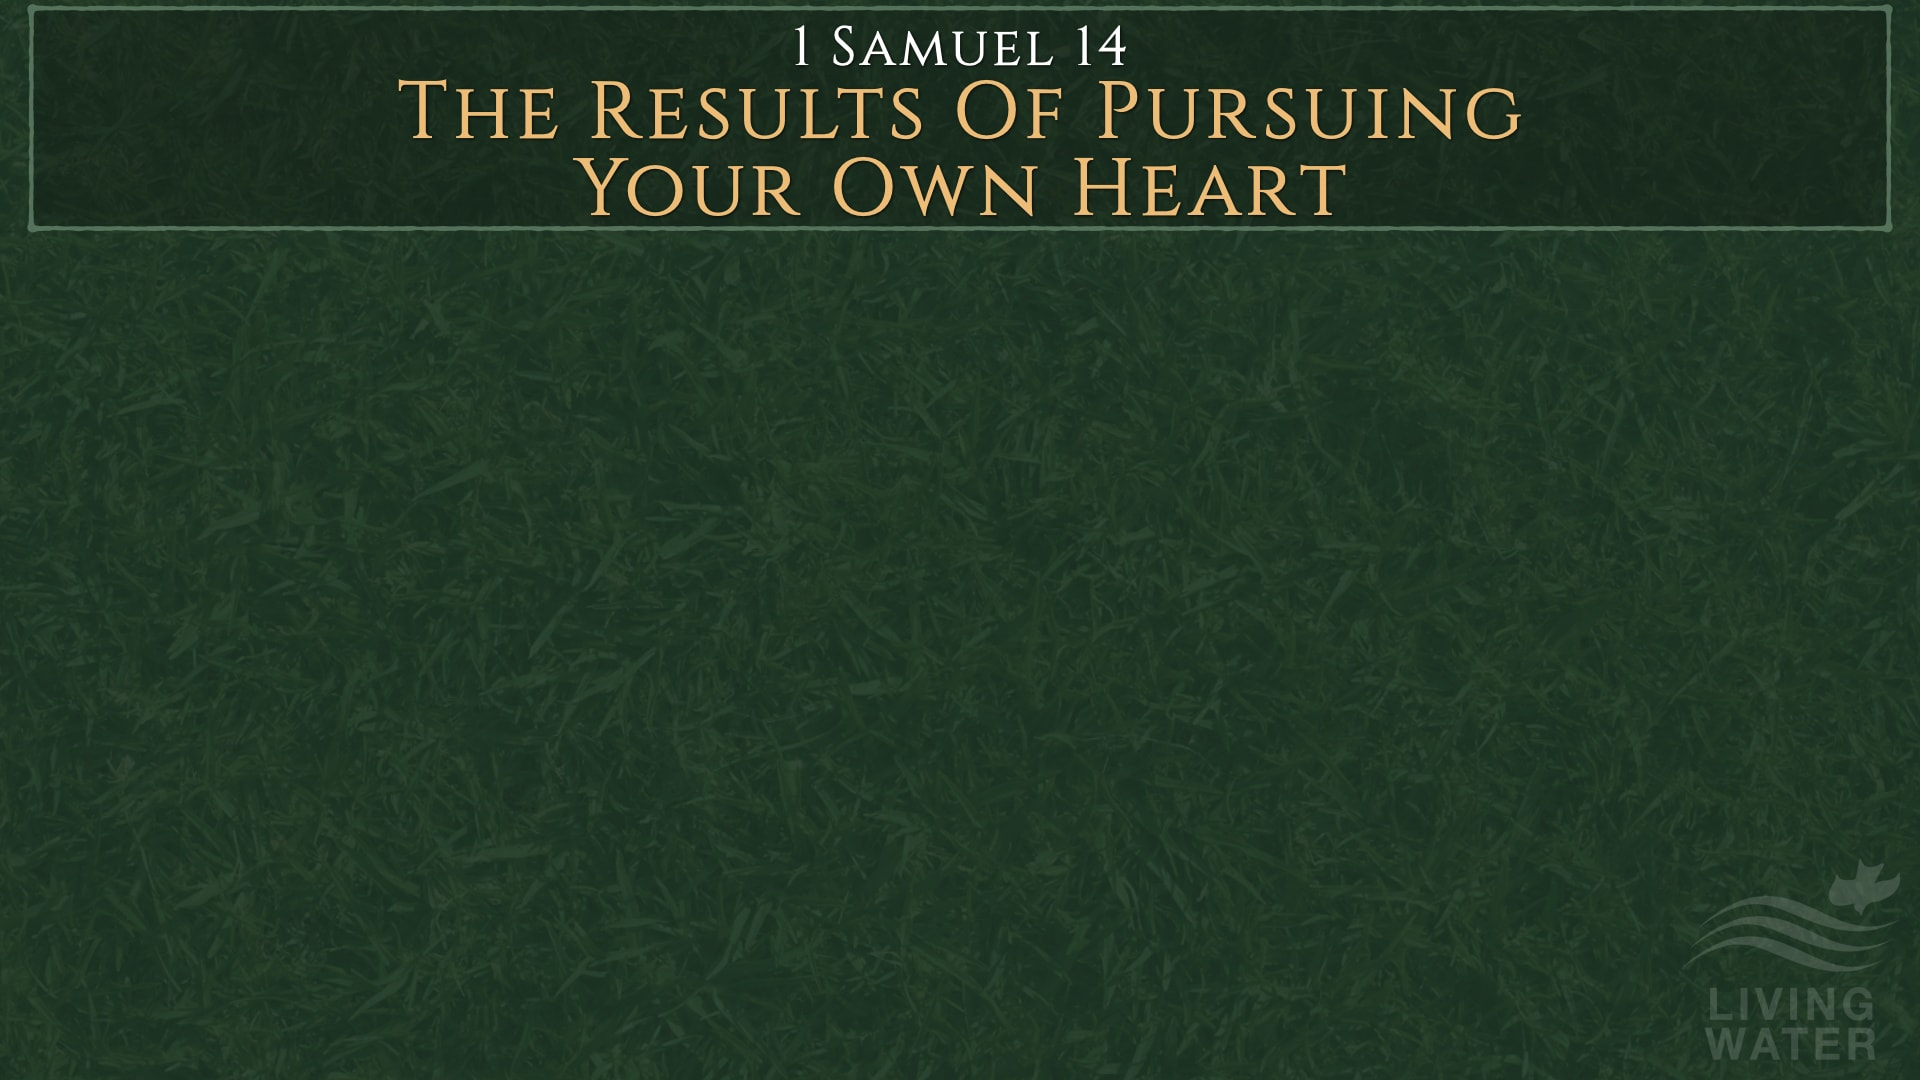 1 Samuel 14:24-52, The Results Of Pursuing Your Own Heart